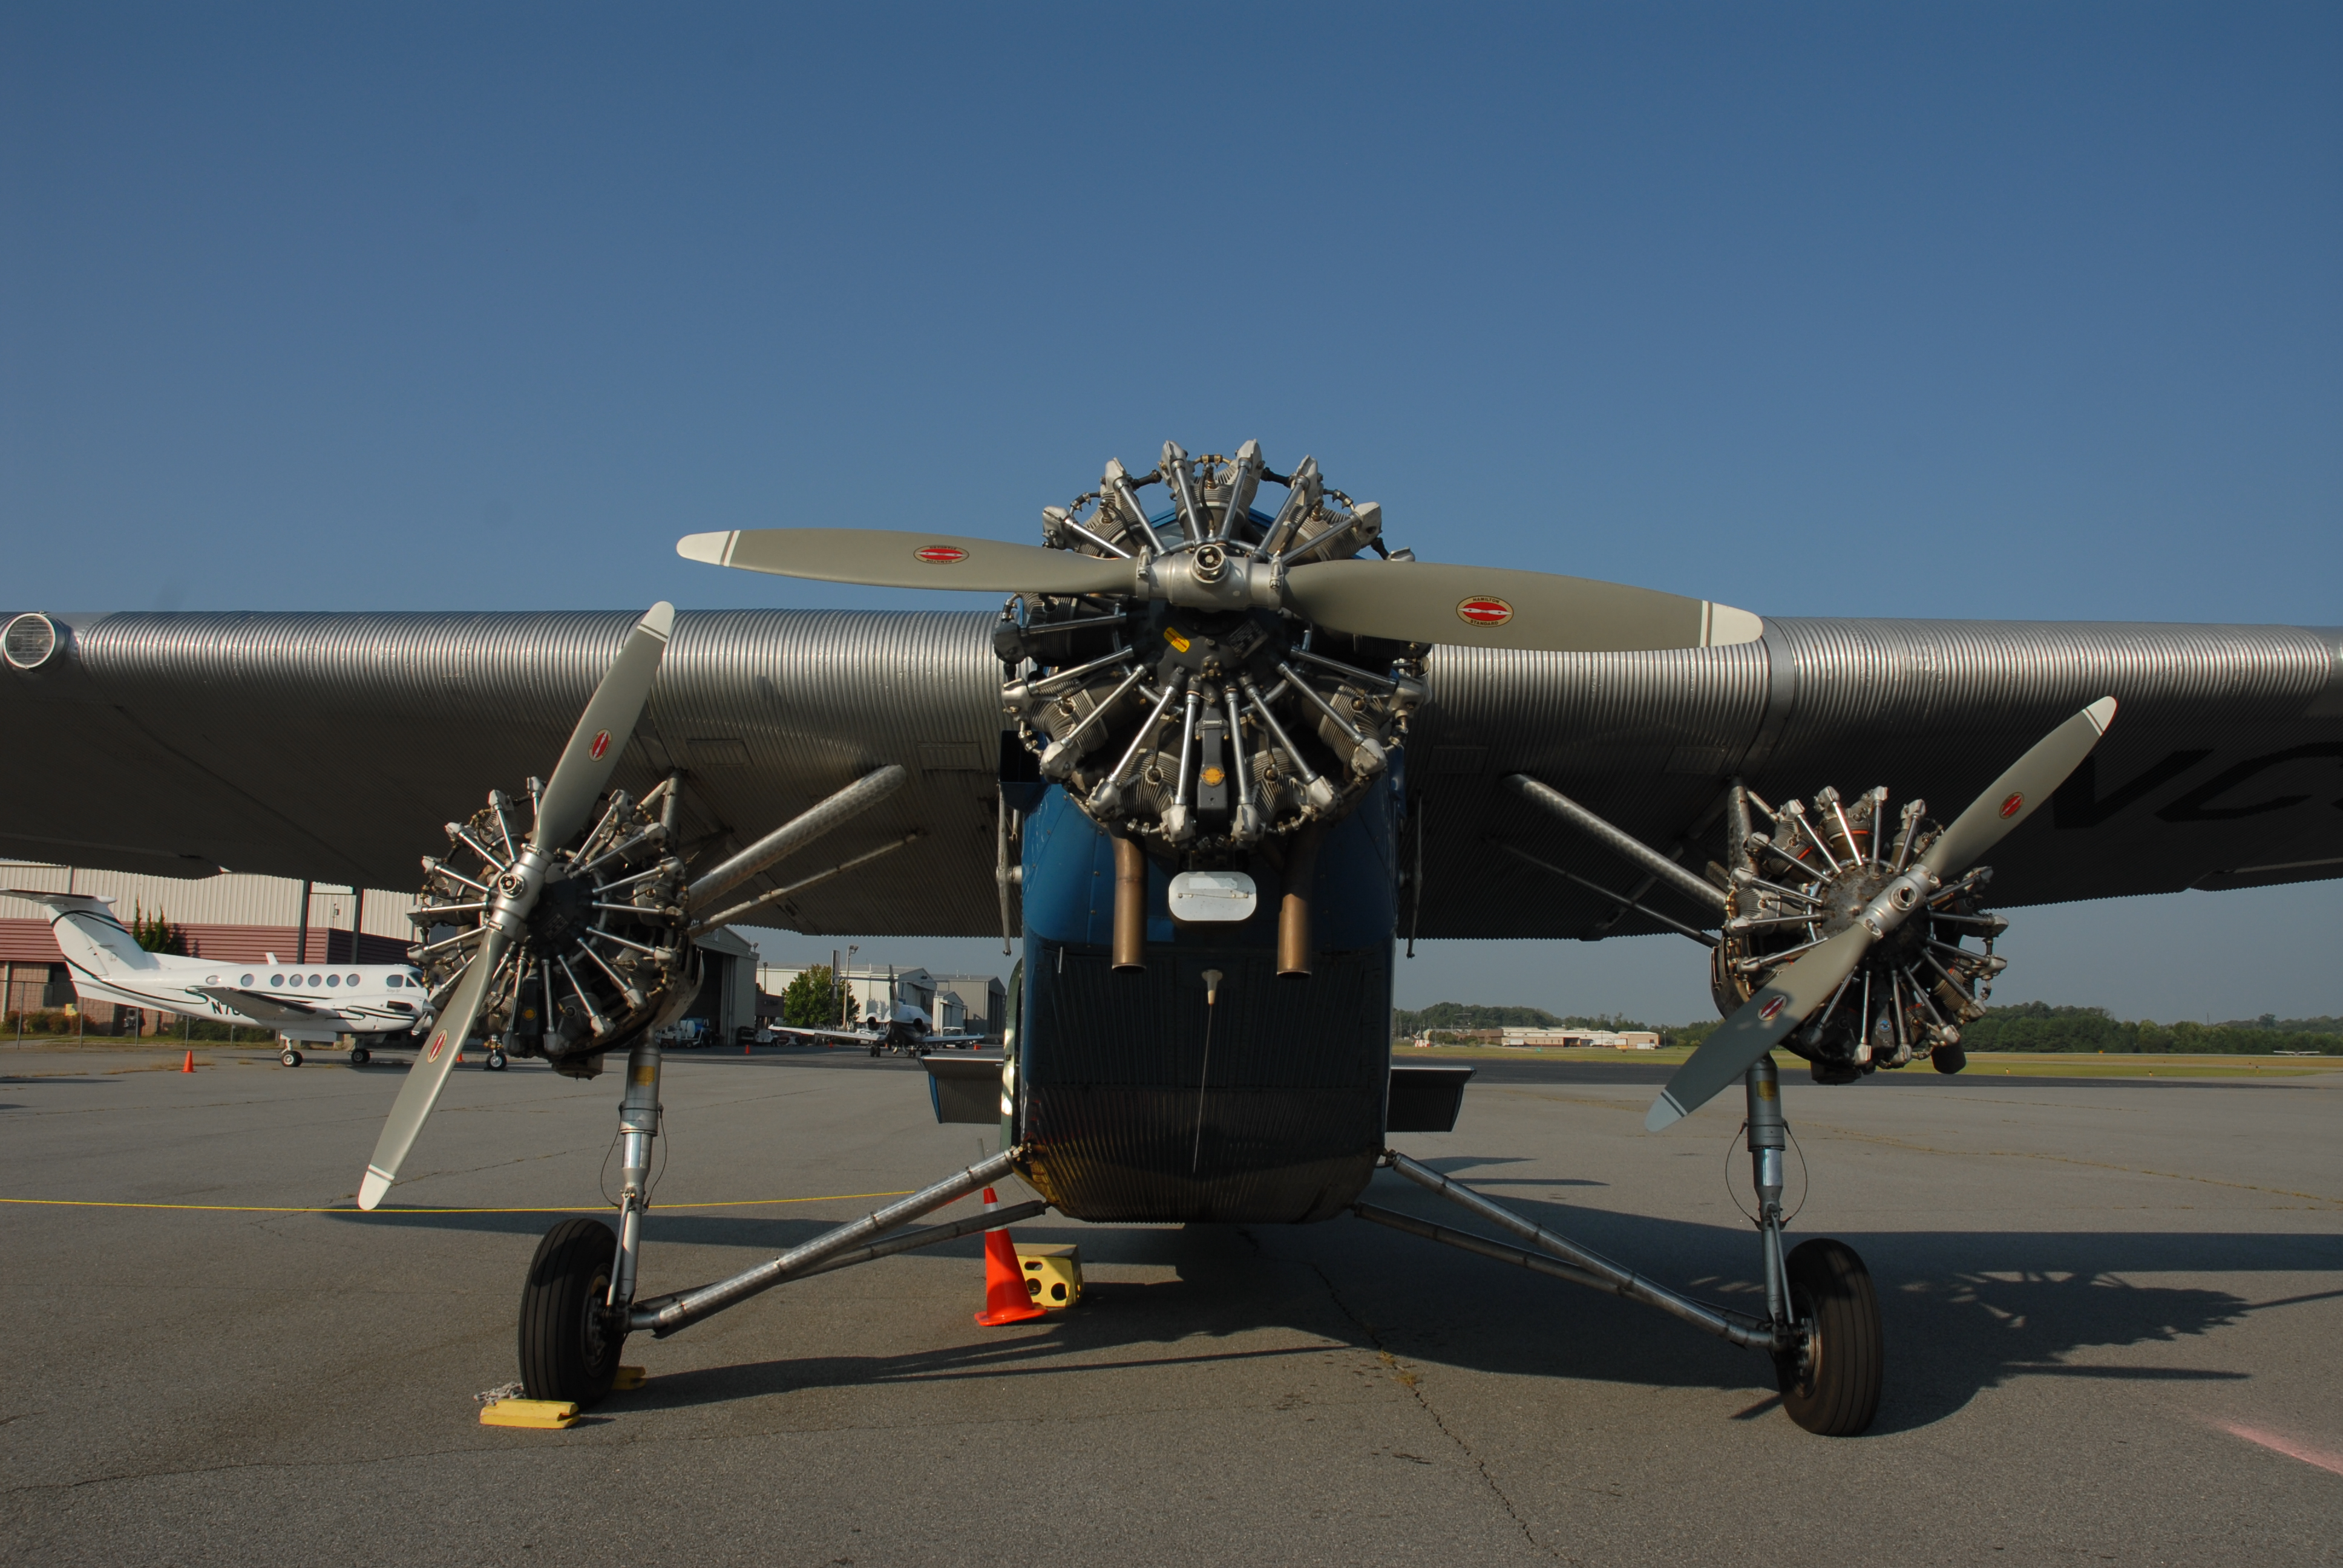 Eaa ford tri motor plane for Ford tri motor crash